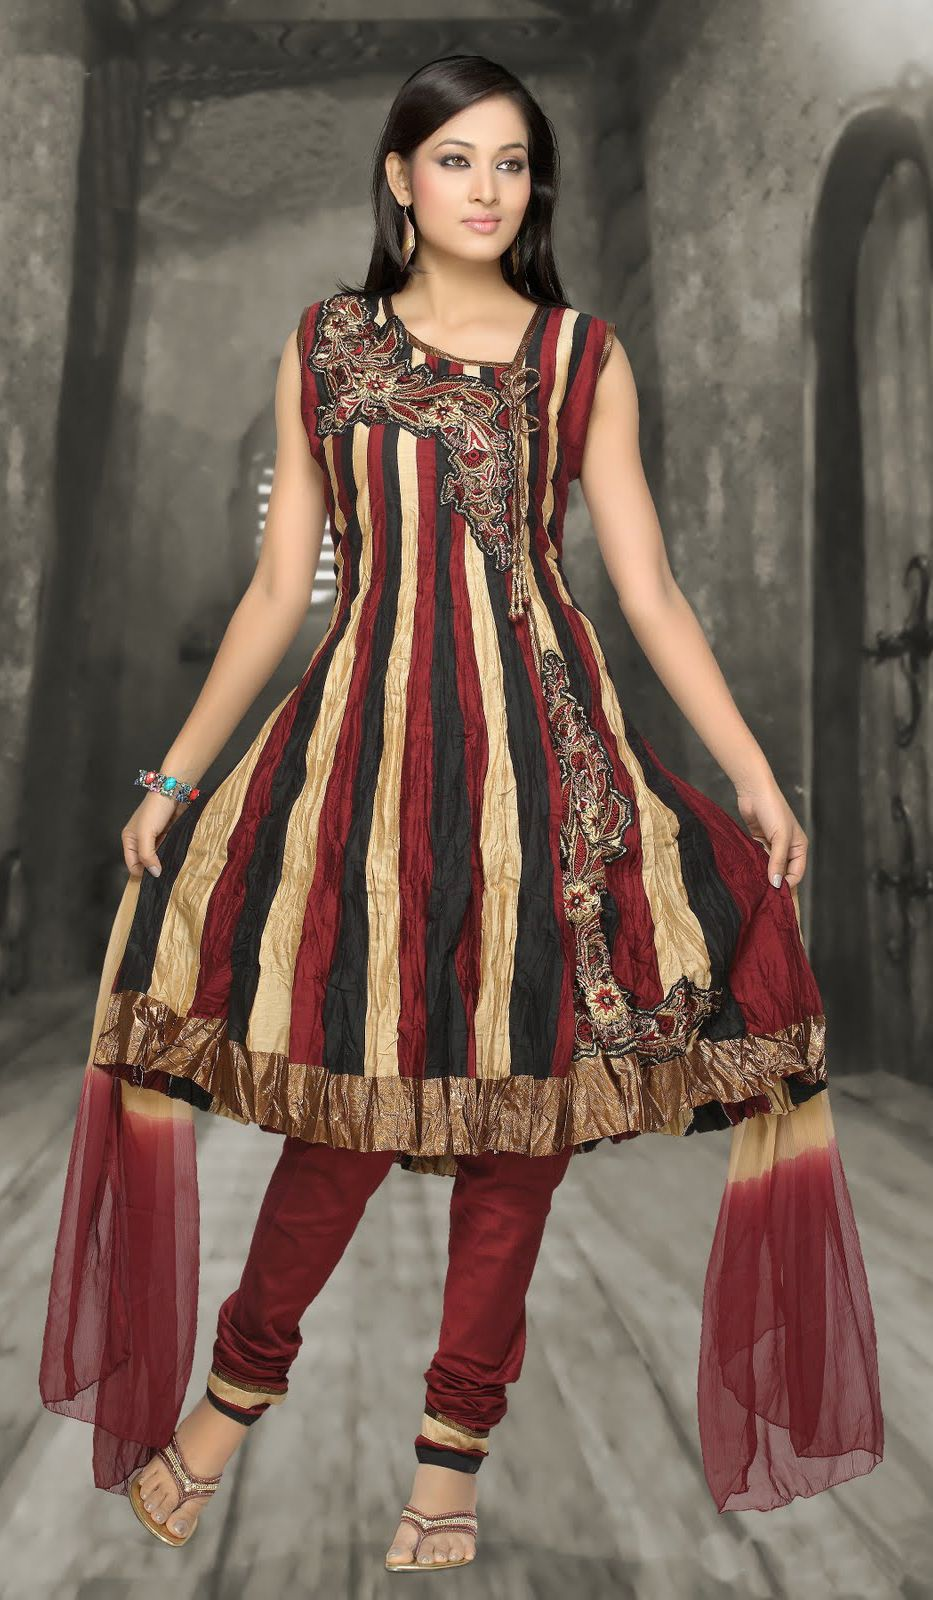 Salwar Kameez Indian Traditional Dress Visit India With